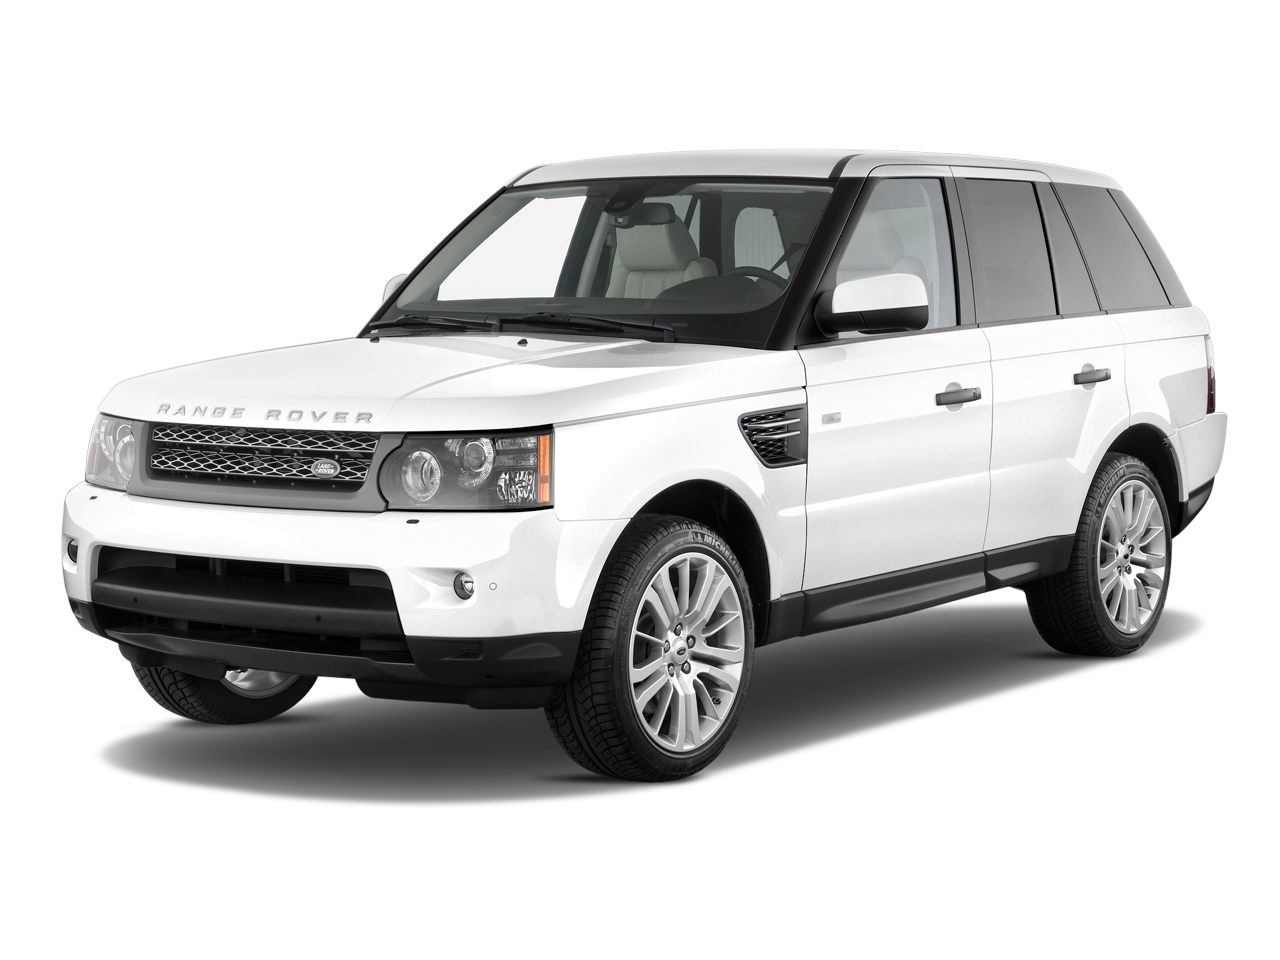 2011 land rover range rover sport review and news motorauthority. Black Bedroom Furniture Sets. Home Design Ideas